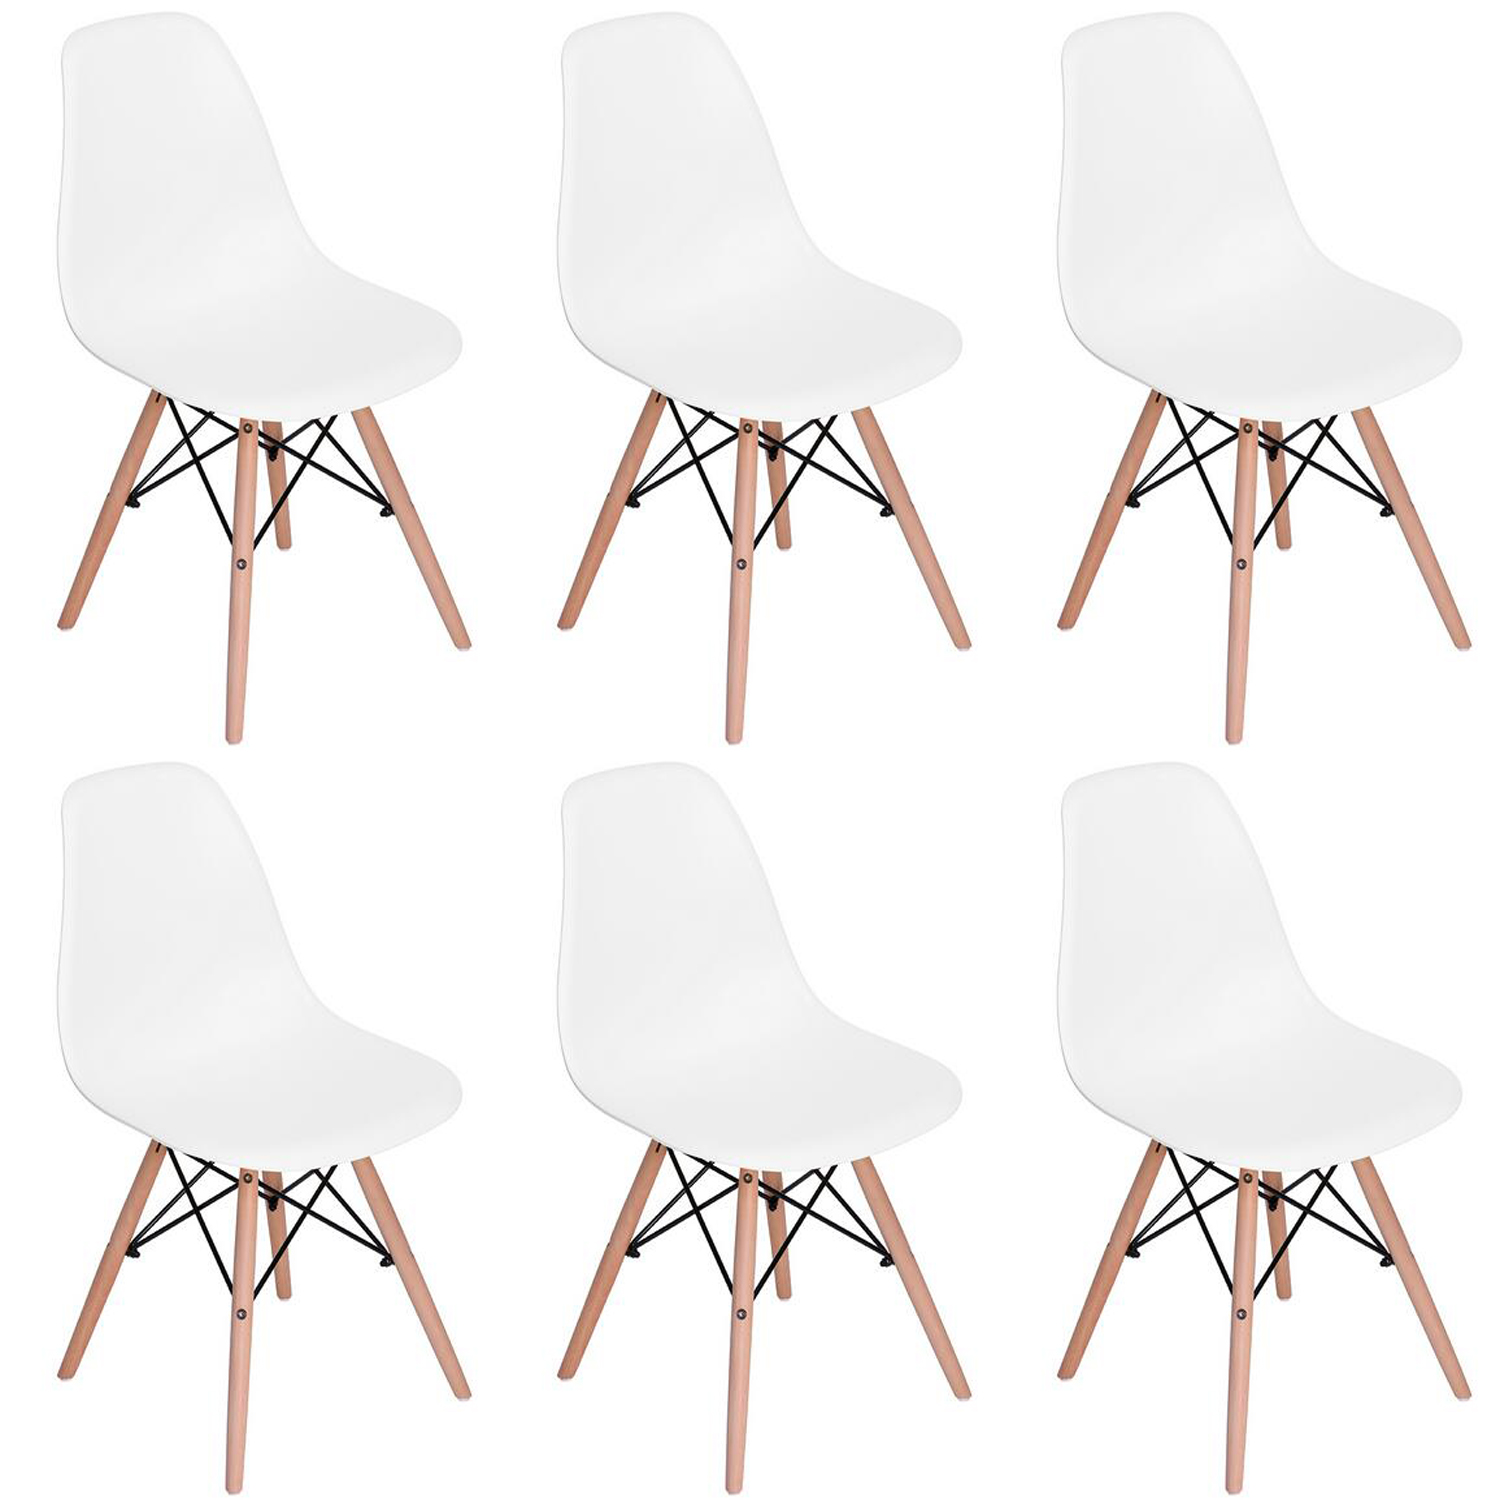 Eames Eiffel Details About Retro Eames Eiffel Dsw Daw Dining Chair Cafe Kitchen Pp Beech Wood 2 4 6pcs